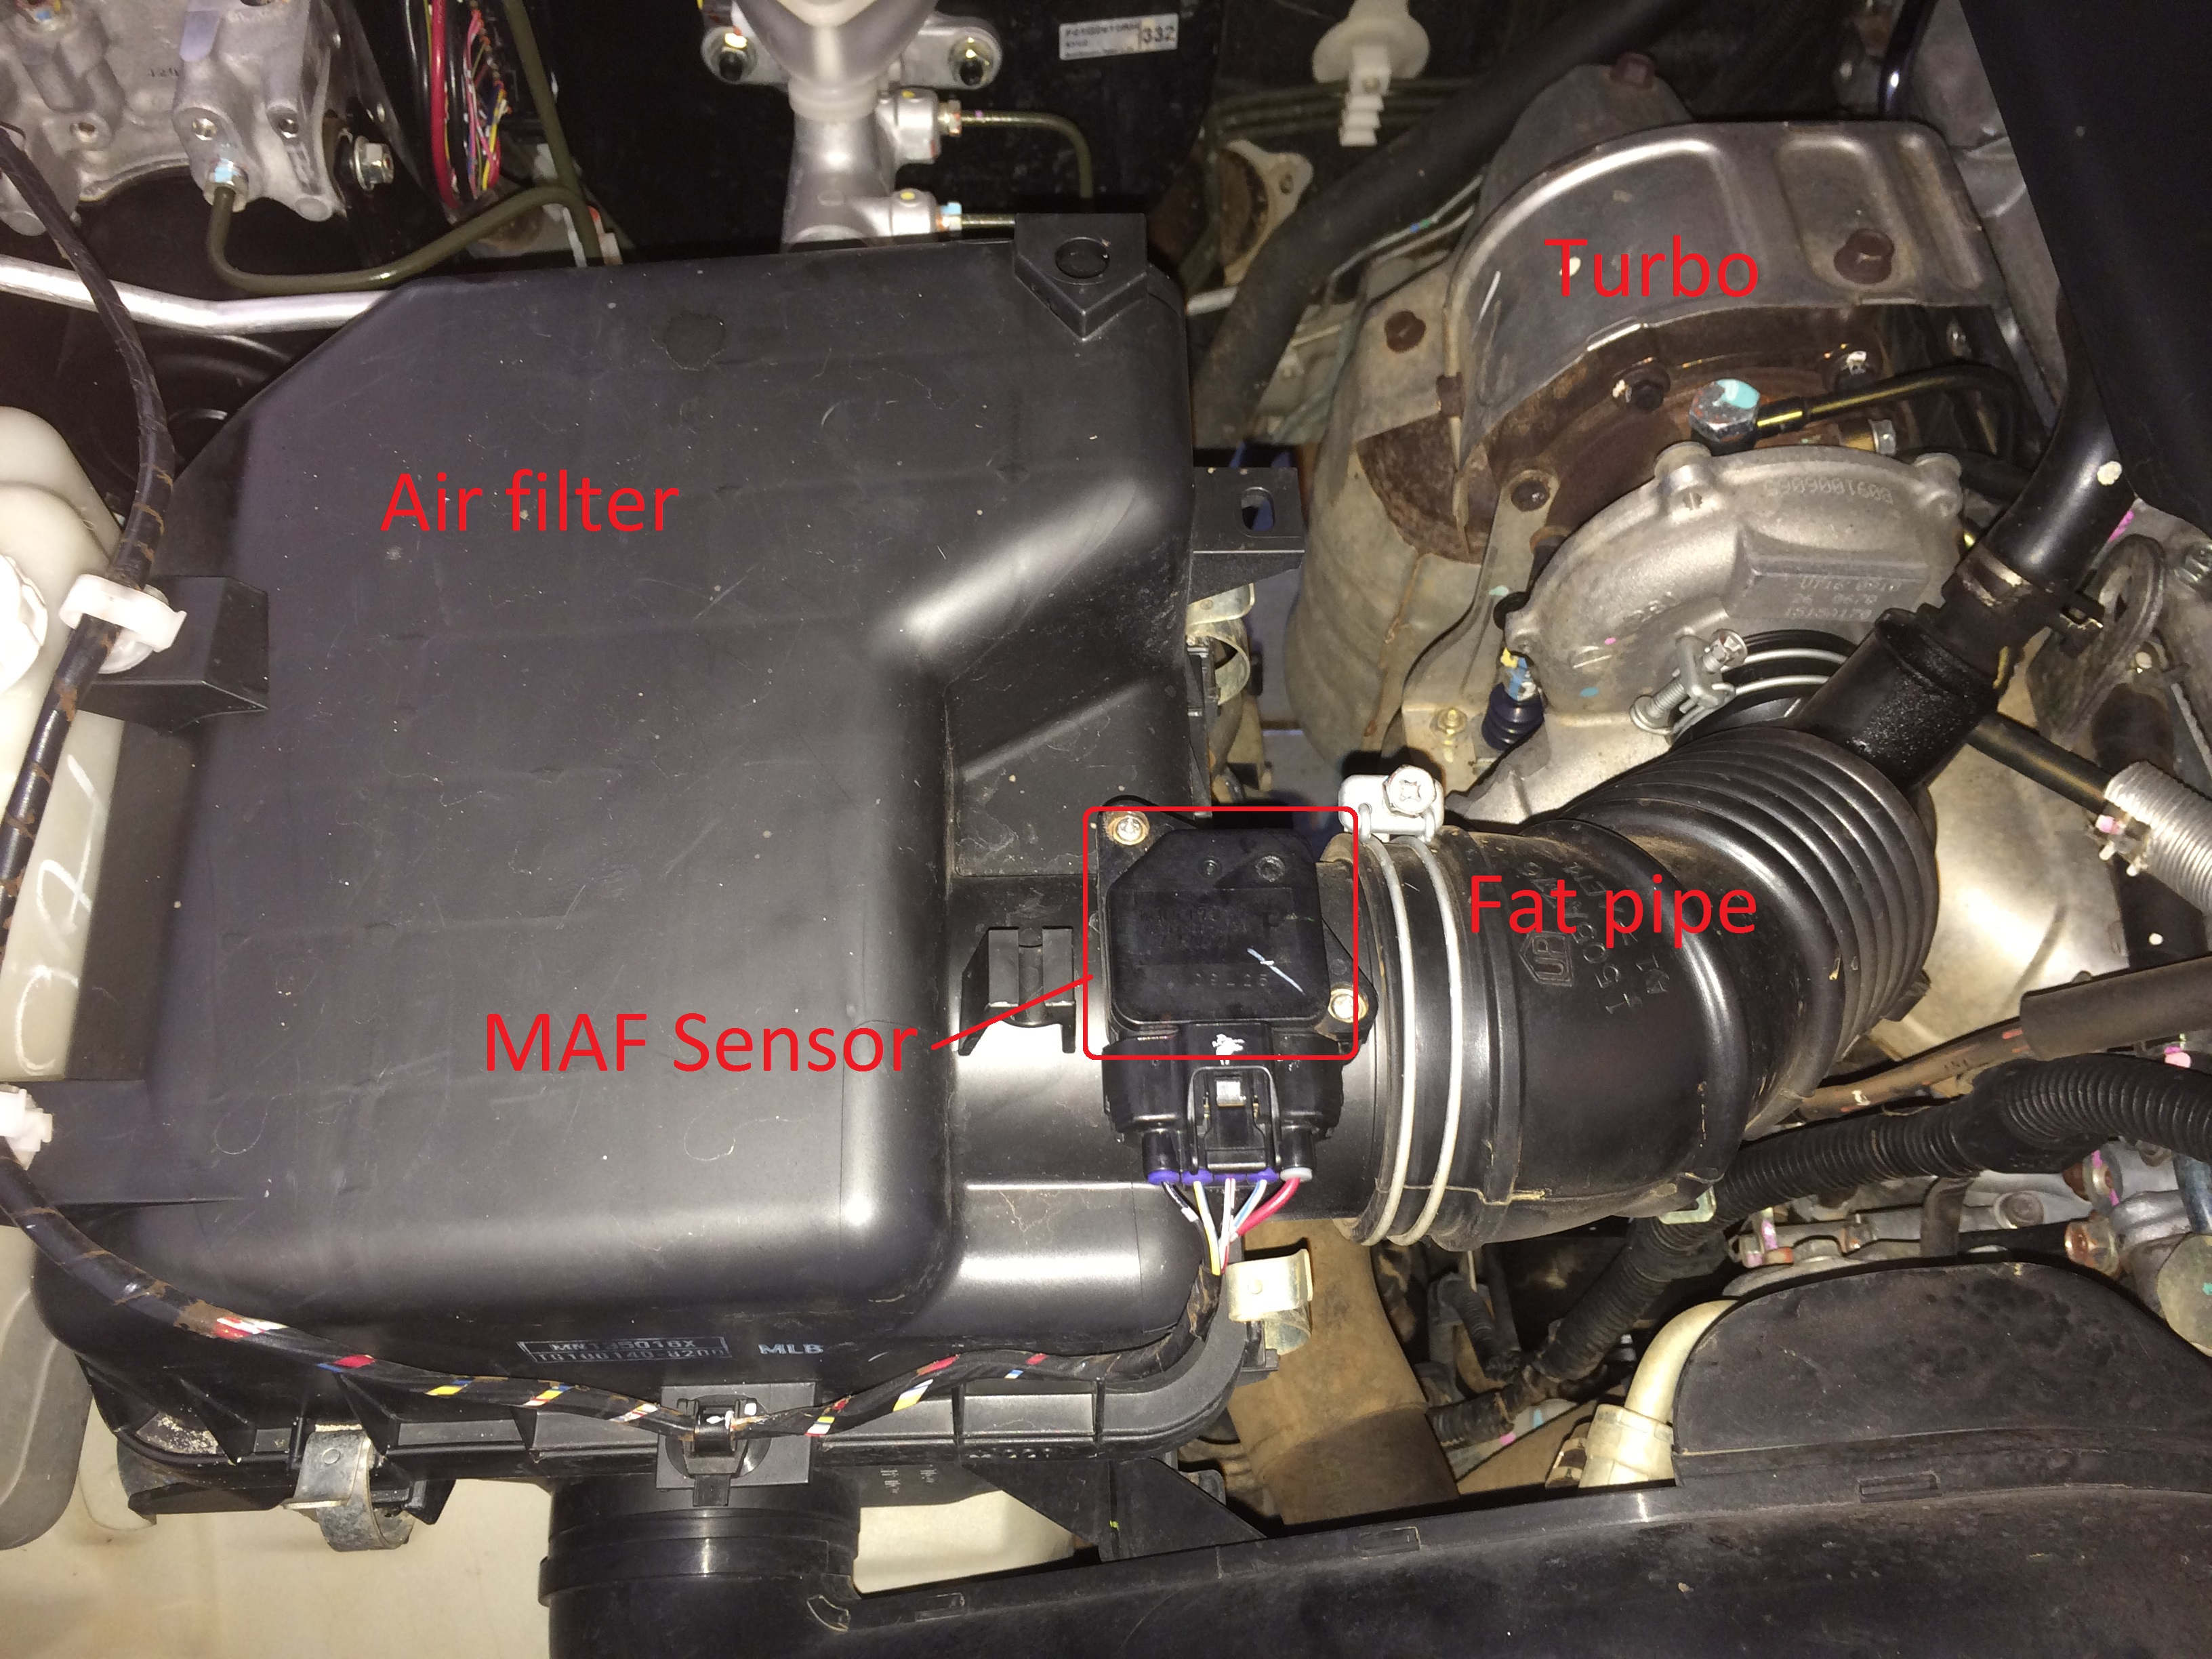 How To Clean The Maf Sensor On A 4wd Mitsubishi Montero Wiring Lights Location Pb Challenger